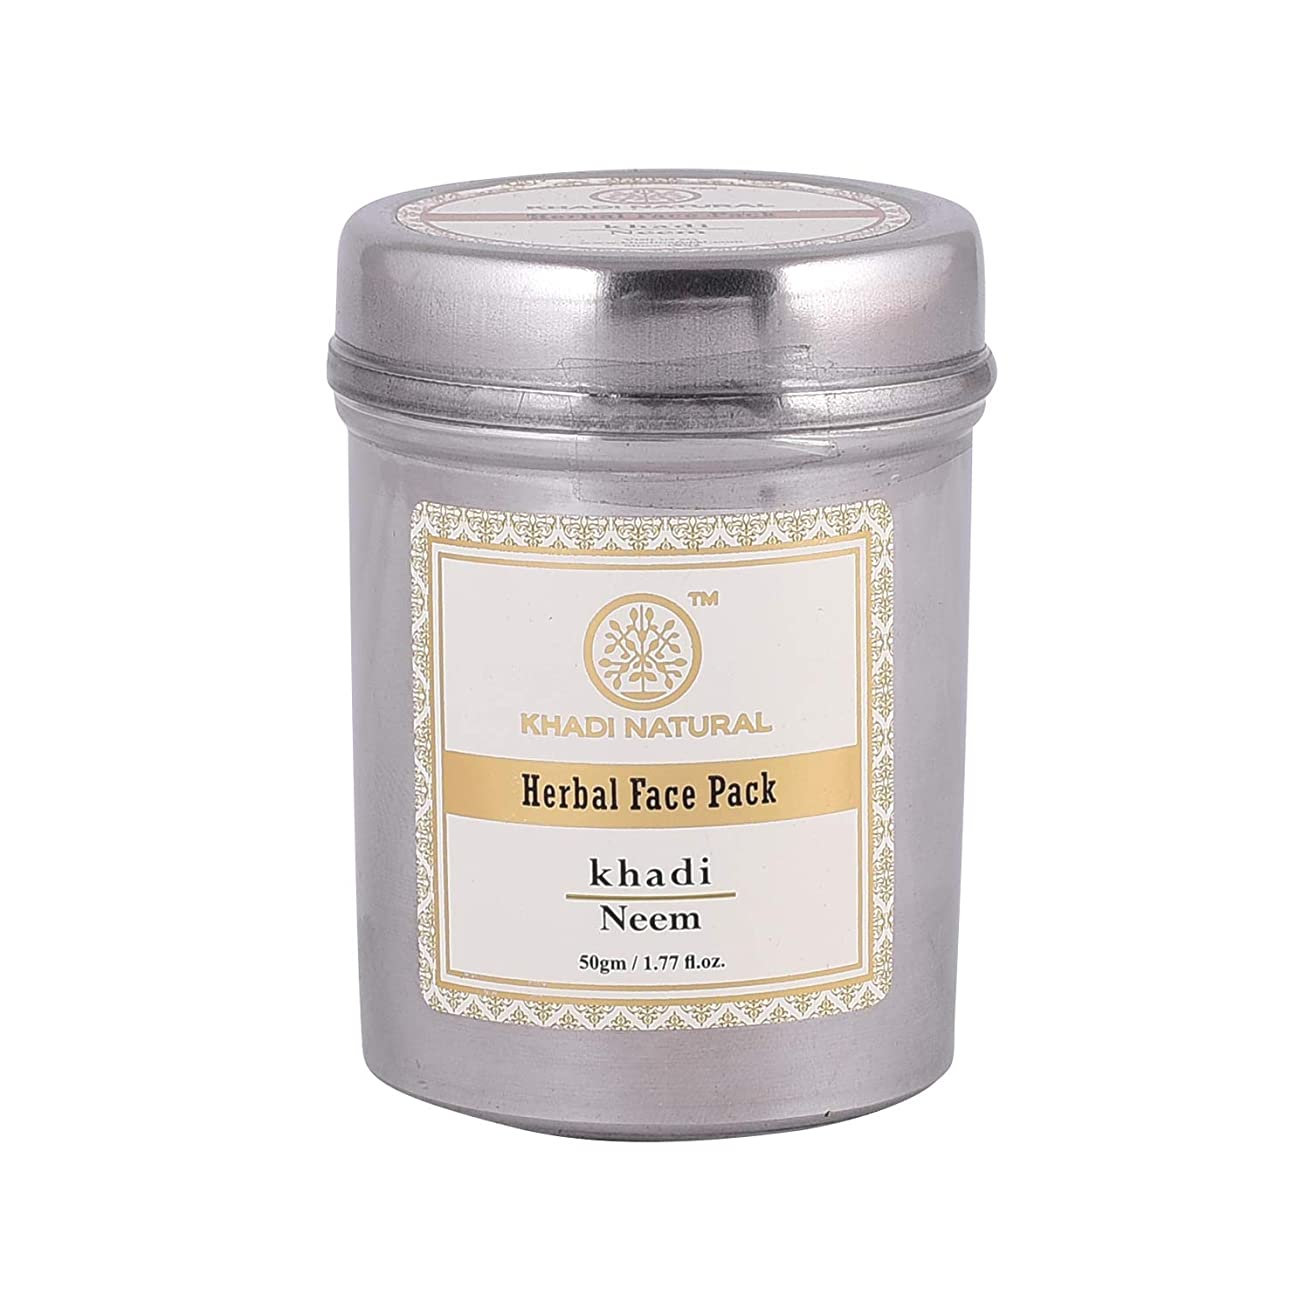 遅い疑問を超えて仕立て屋Khadi Natural Herbal Neem Face Pack (50g)